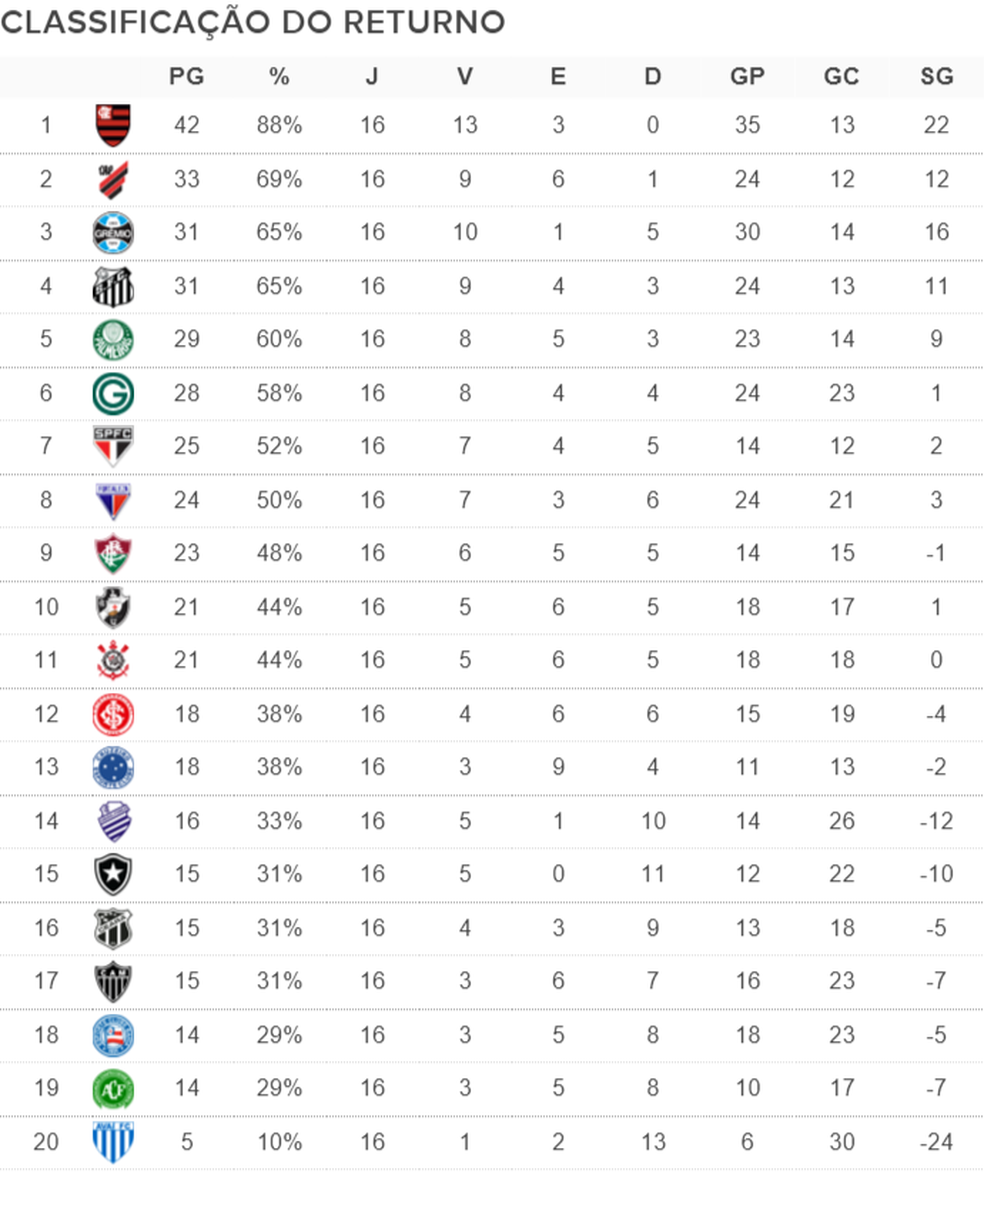 Classificacao Do Returno Athletico Chega A Vice Lideranca Ao Superar Gremio E Santos Na Rodada Numerologos Ge